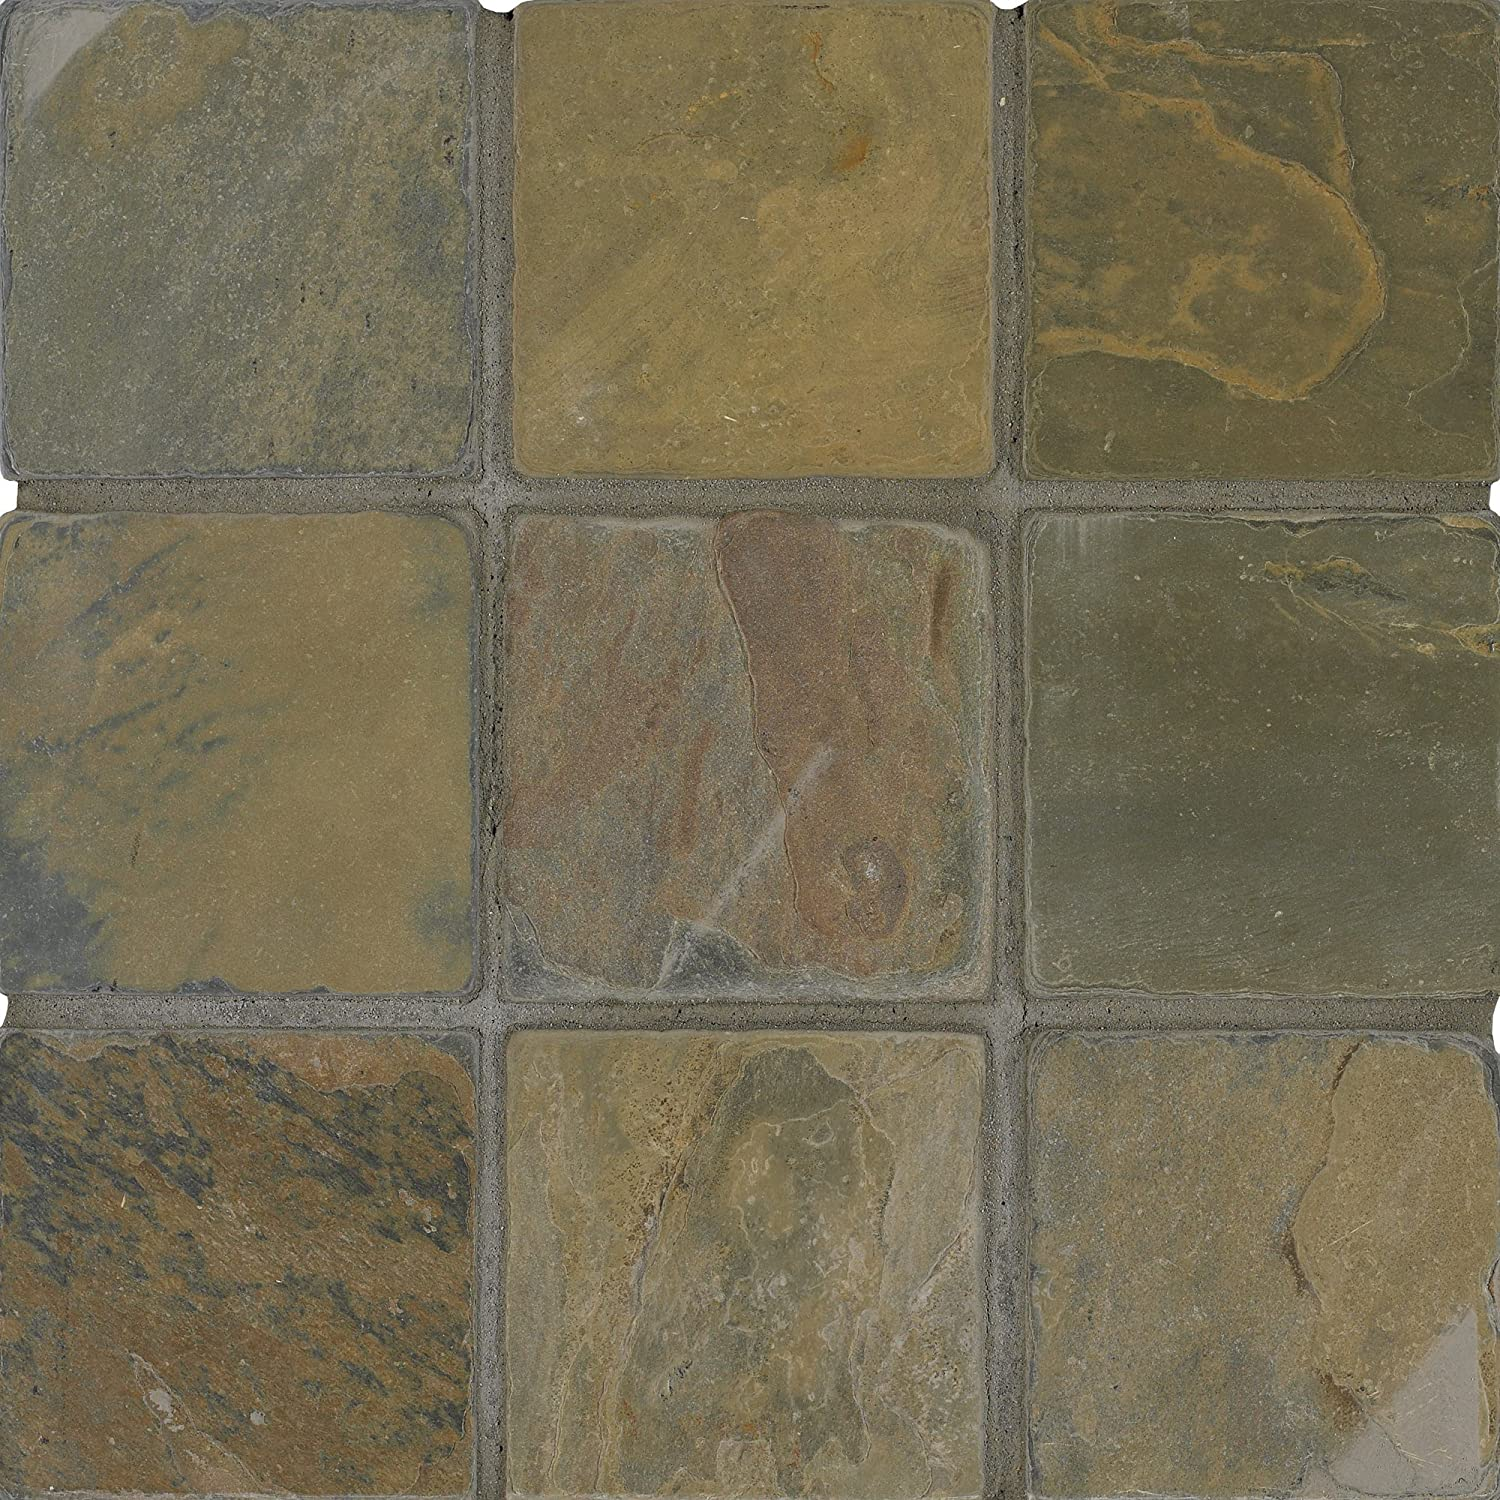 Arizona tile 4 by 4 inch tumbled slate tile rustic gold 6 total arizona tile 4 by 4 inch tumbled slate tile rustic gold 6 total square feet stone tiles amazon dailygadgetfo Image collections